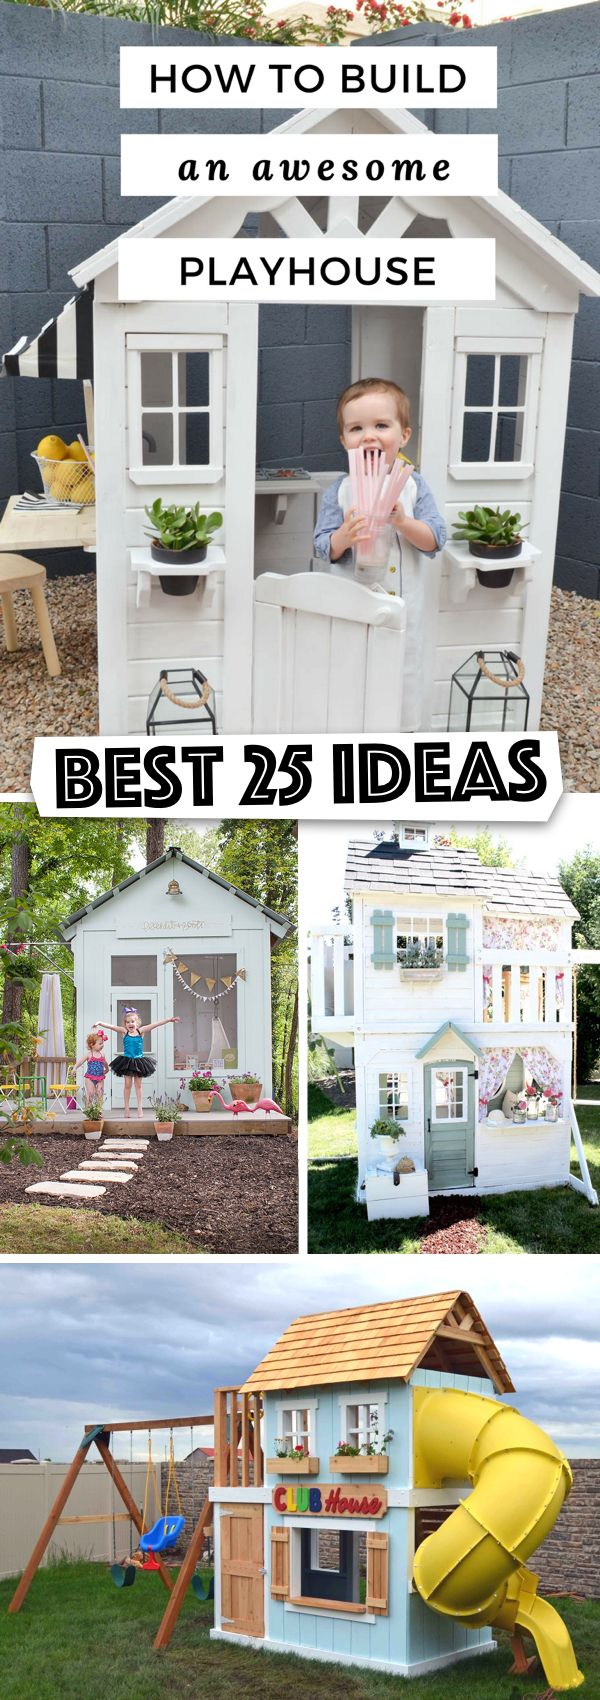 25 Amazing Outdoor Playhouse Ideas To Keep Your Kids Occupied! Part 94